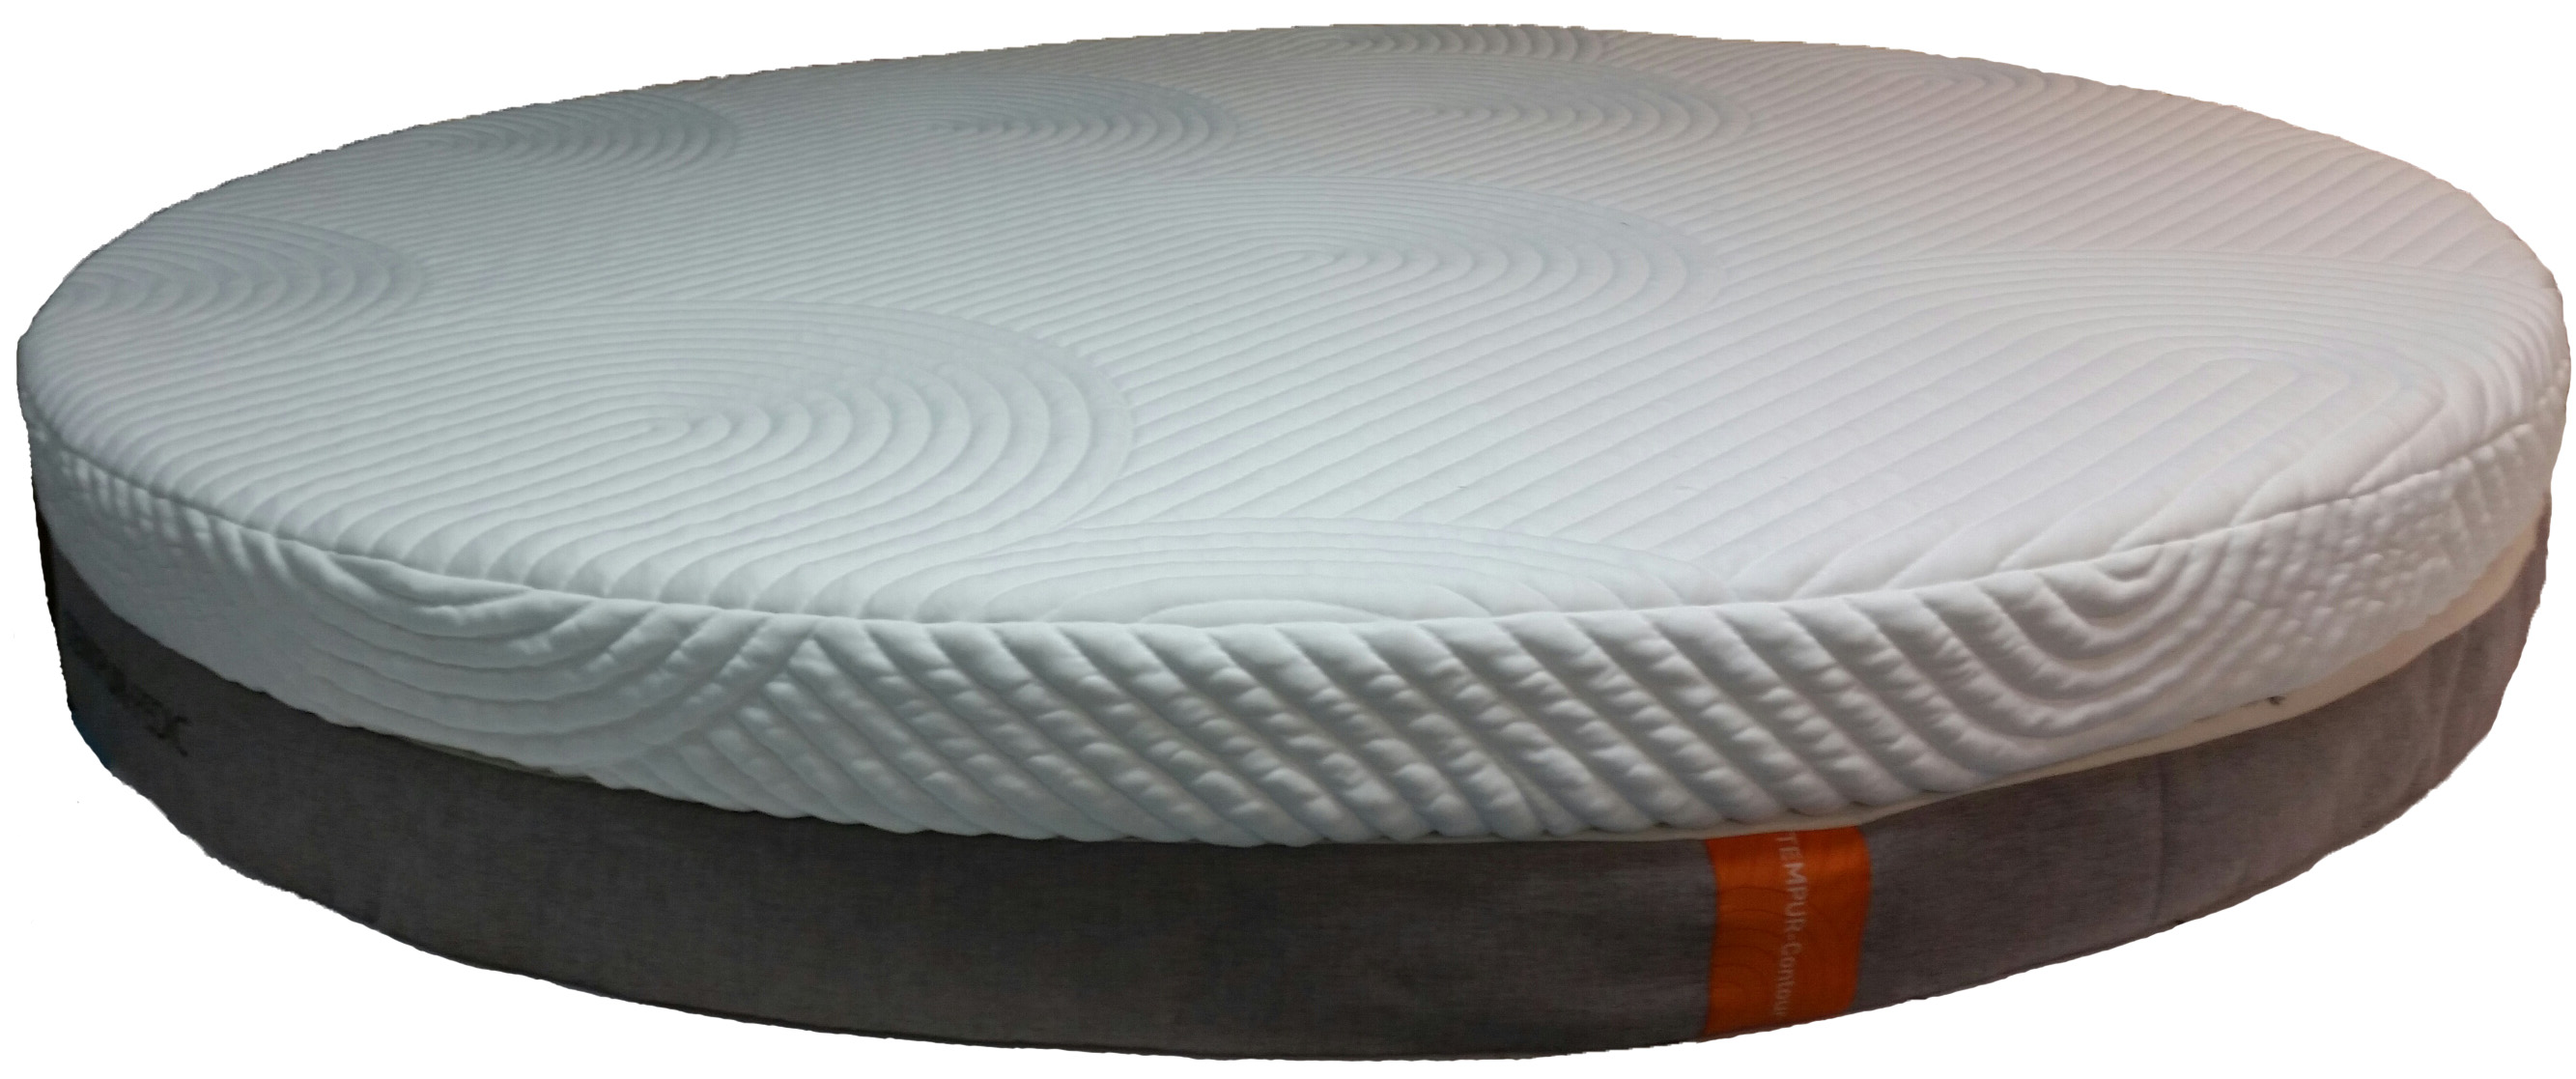 Custom Mattress Gallery Artisans Custom Mattress